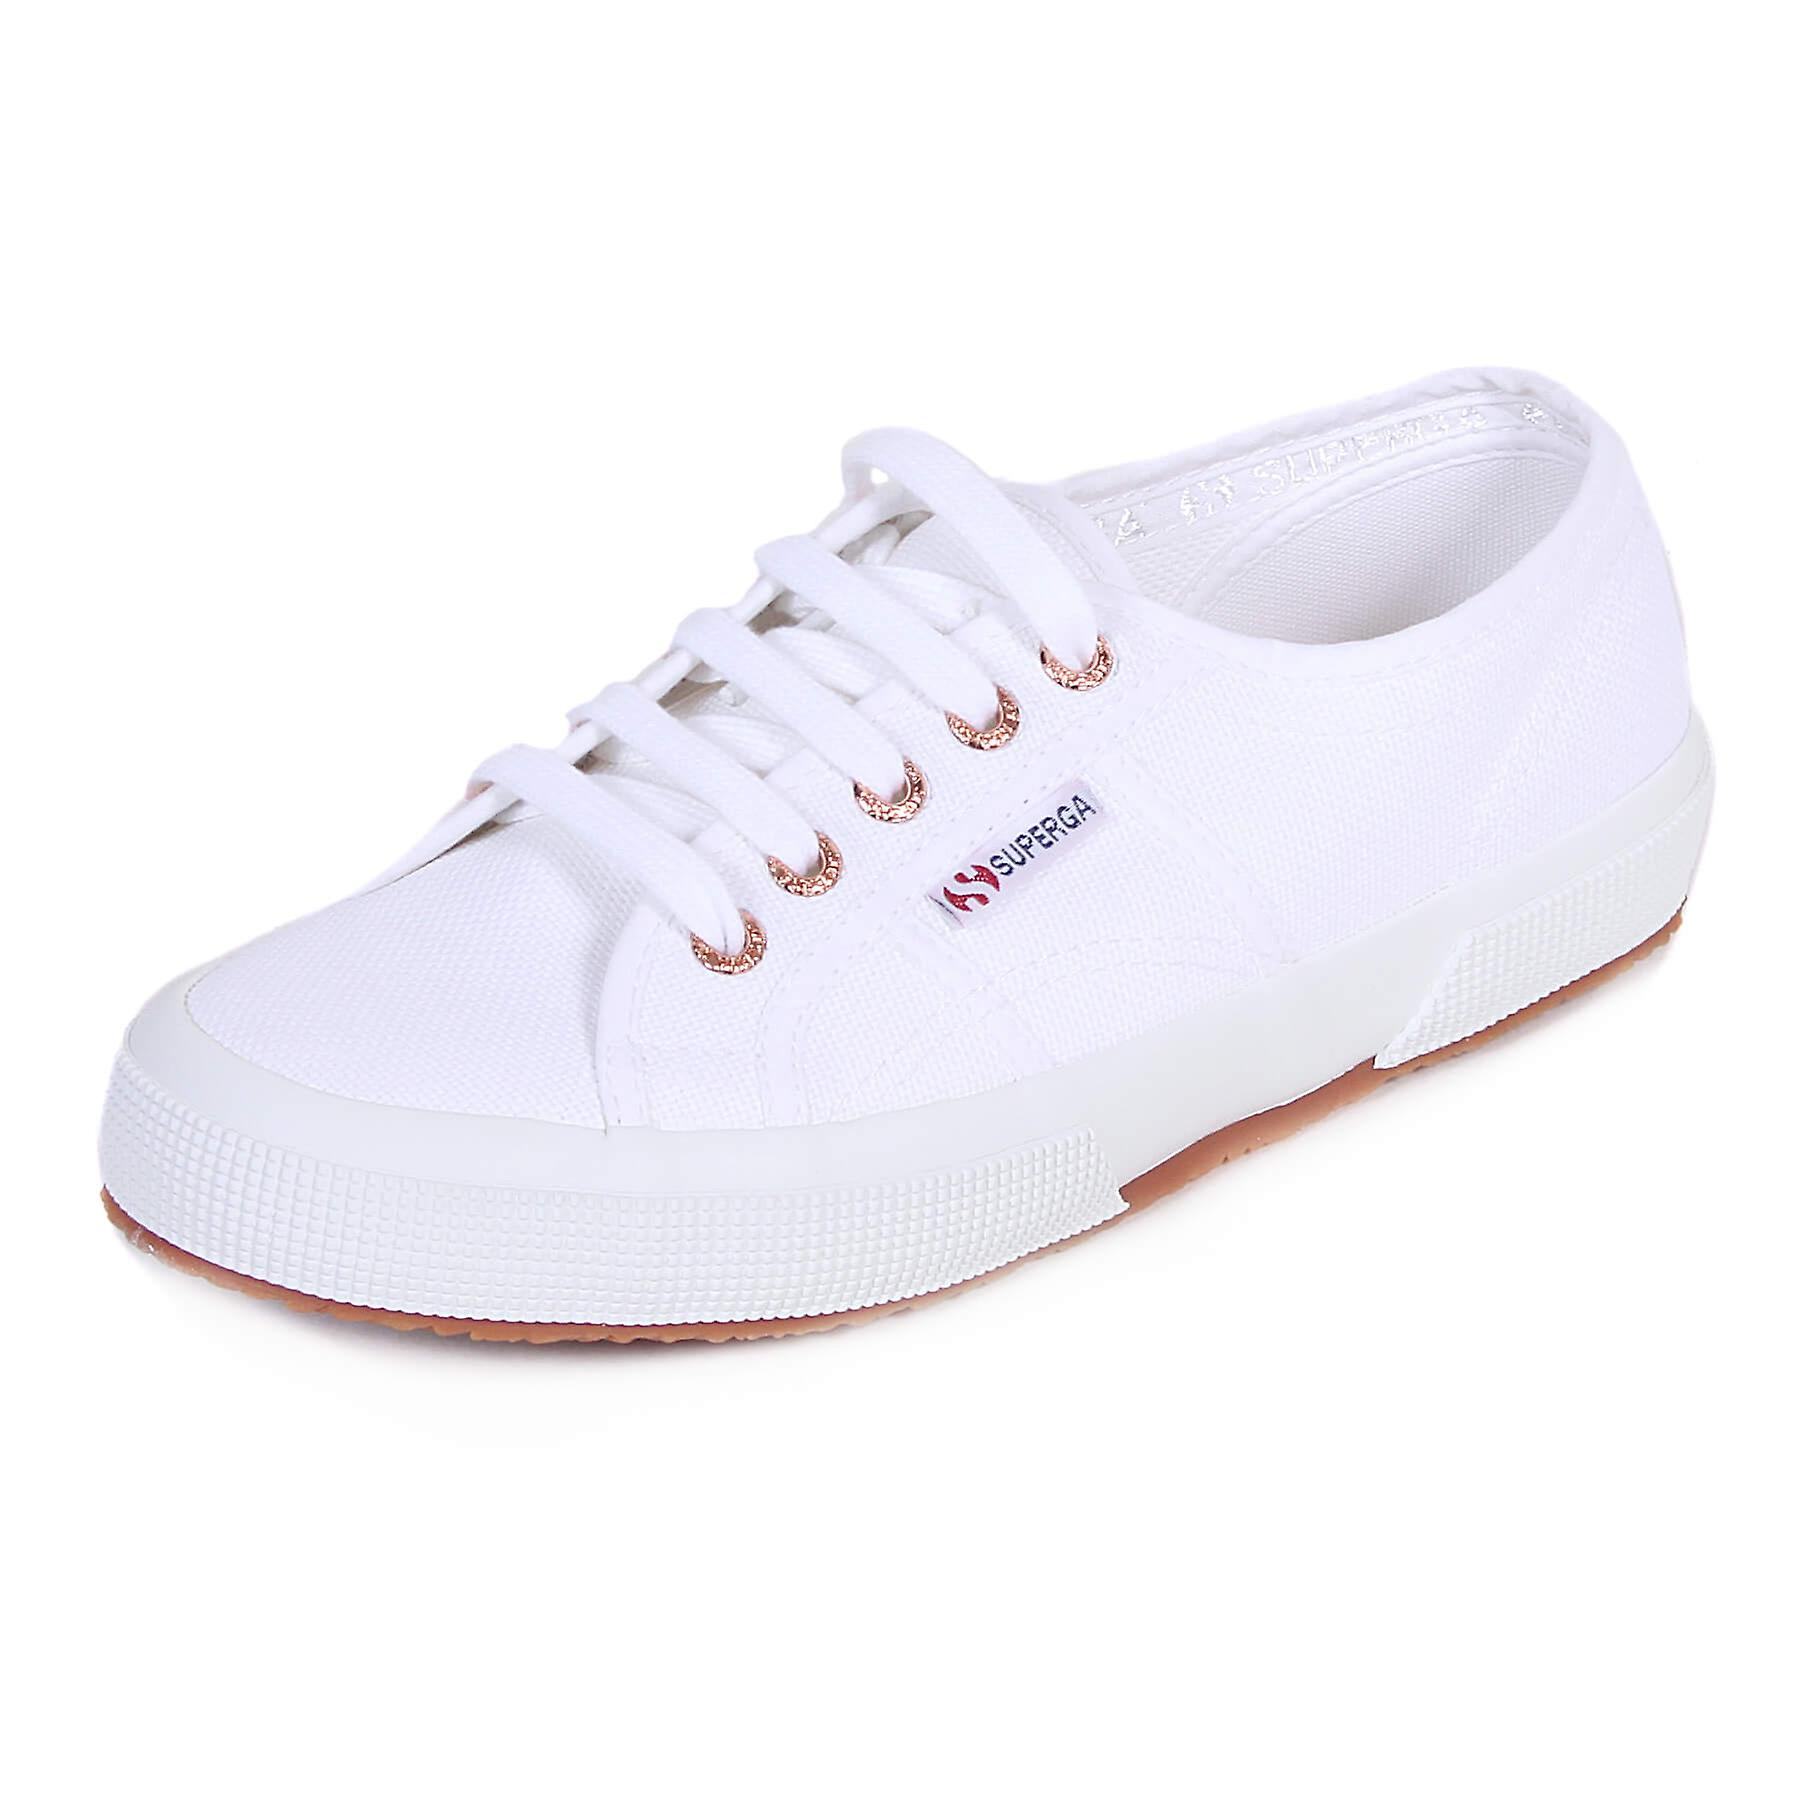 1e19f2941198 Superga Women s 2750 Cotu Canvas Colour Pop Lace Up White   Rose Gold